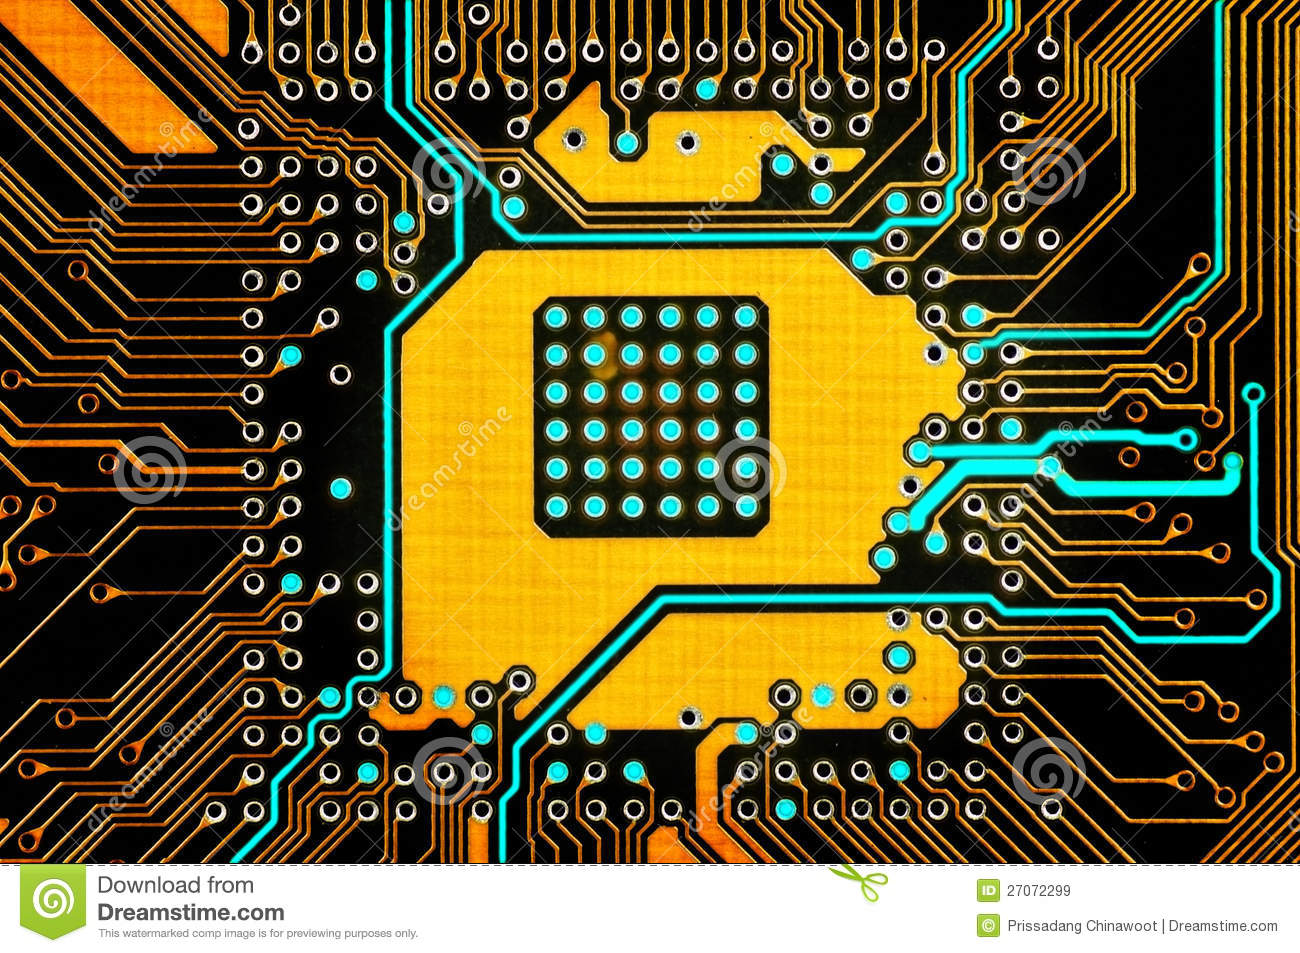 Electronic Circuit Stock Image. Image Of System, Digital